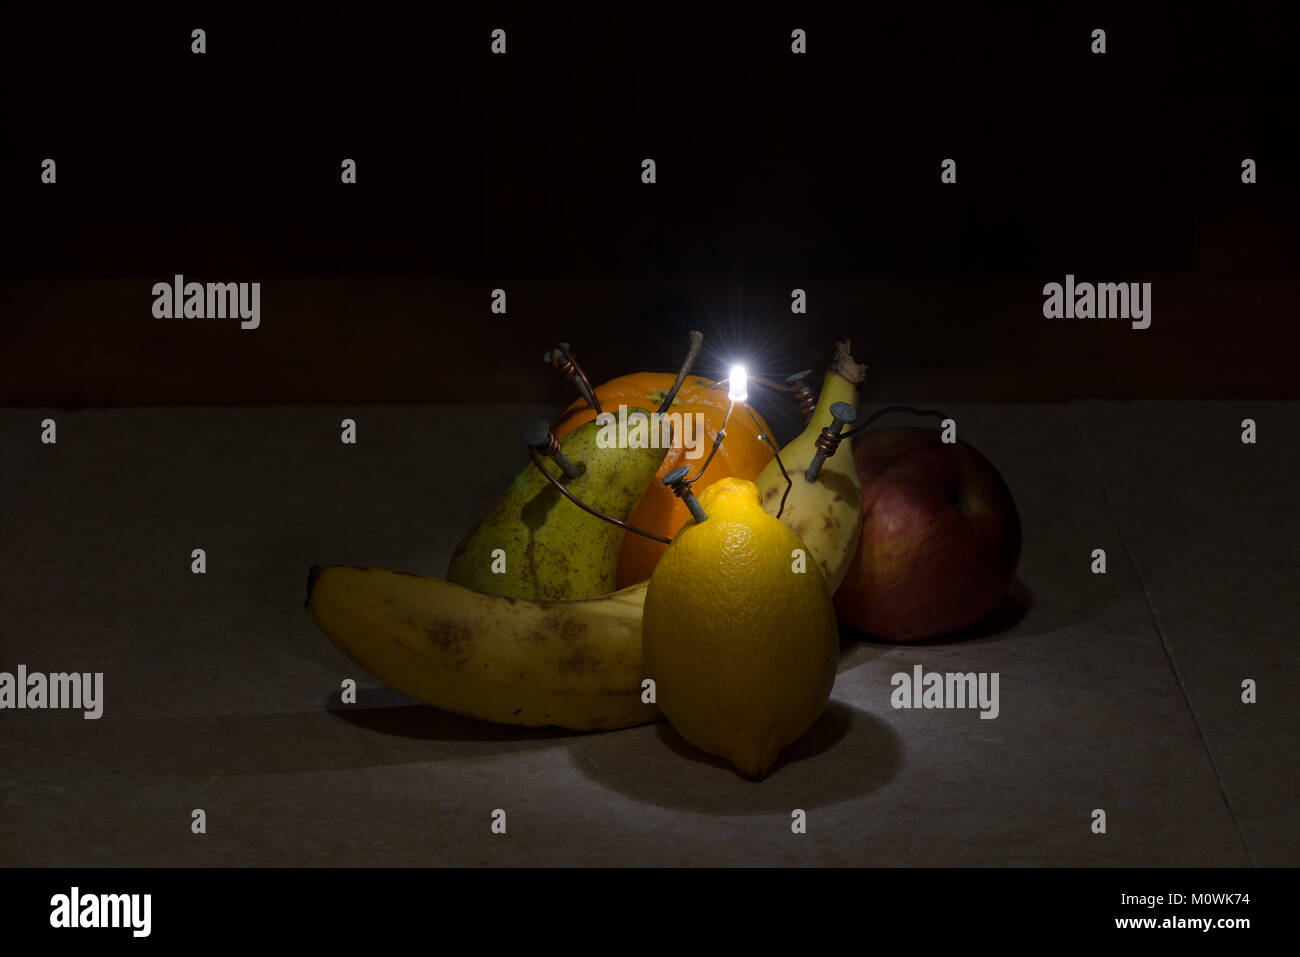 Five A Day 5 Fruit To Provide Energy Power Supply Electricity Stock Led Light Circuit Alternative For The With Produced As Electrical